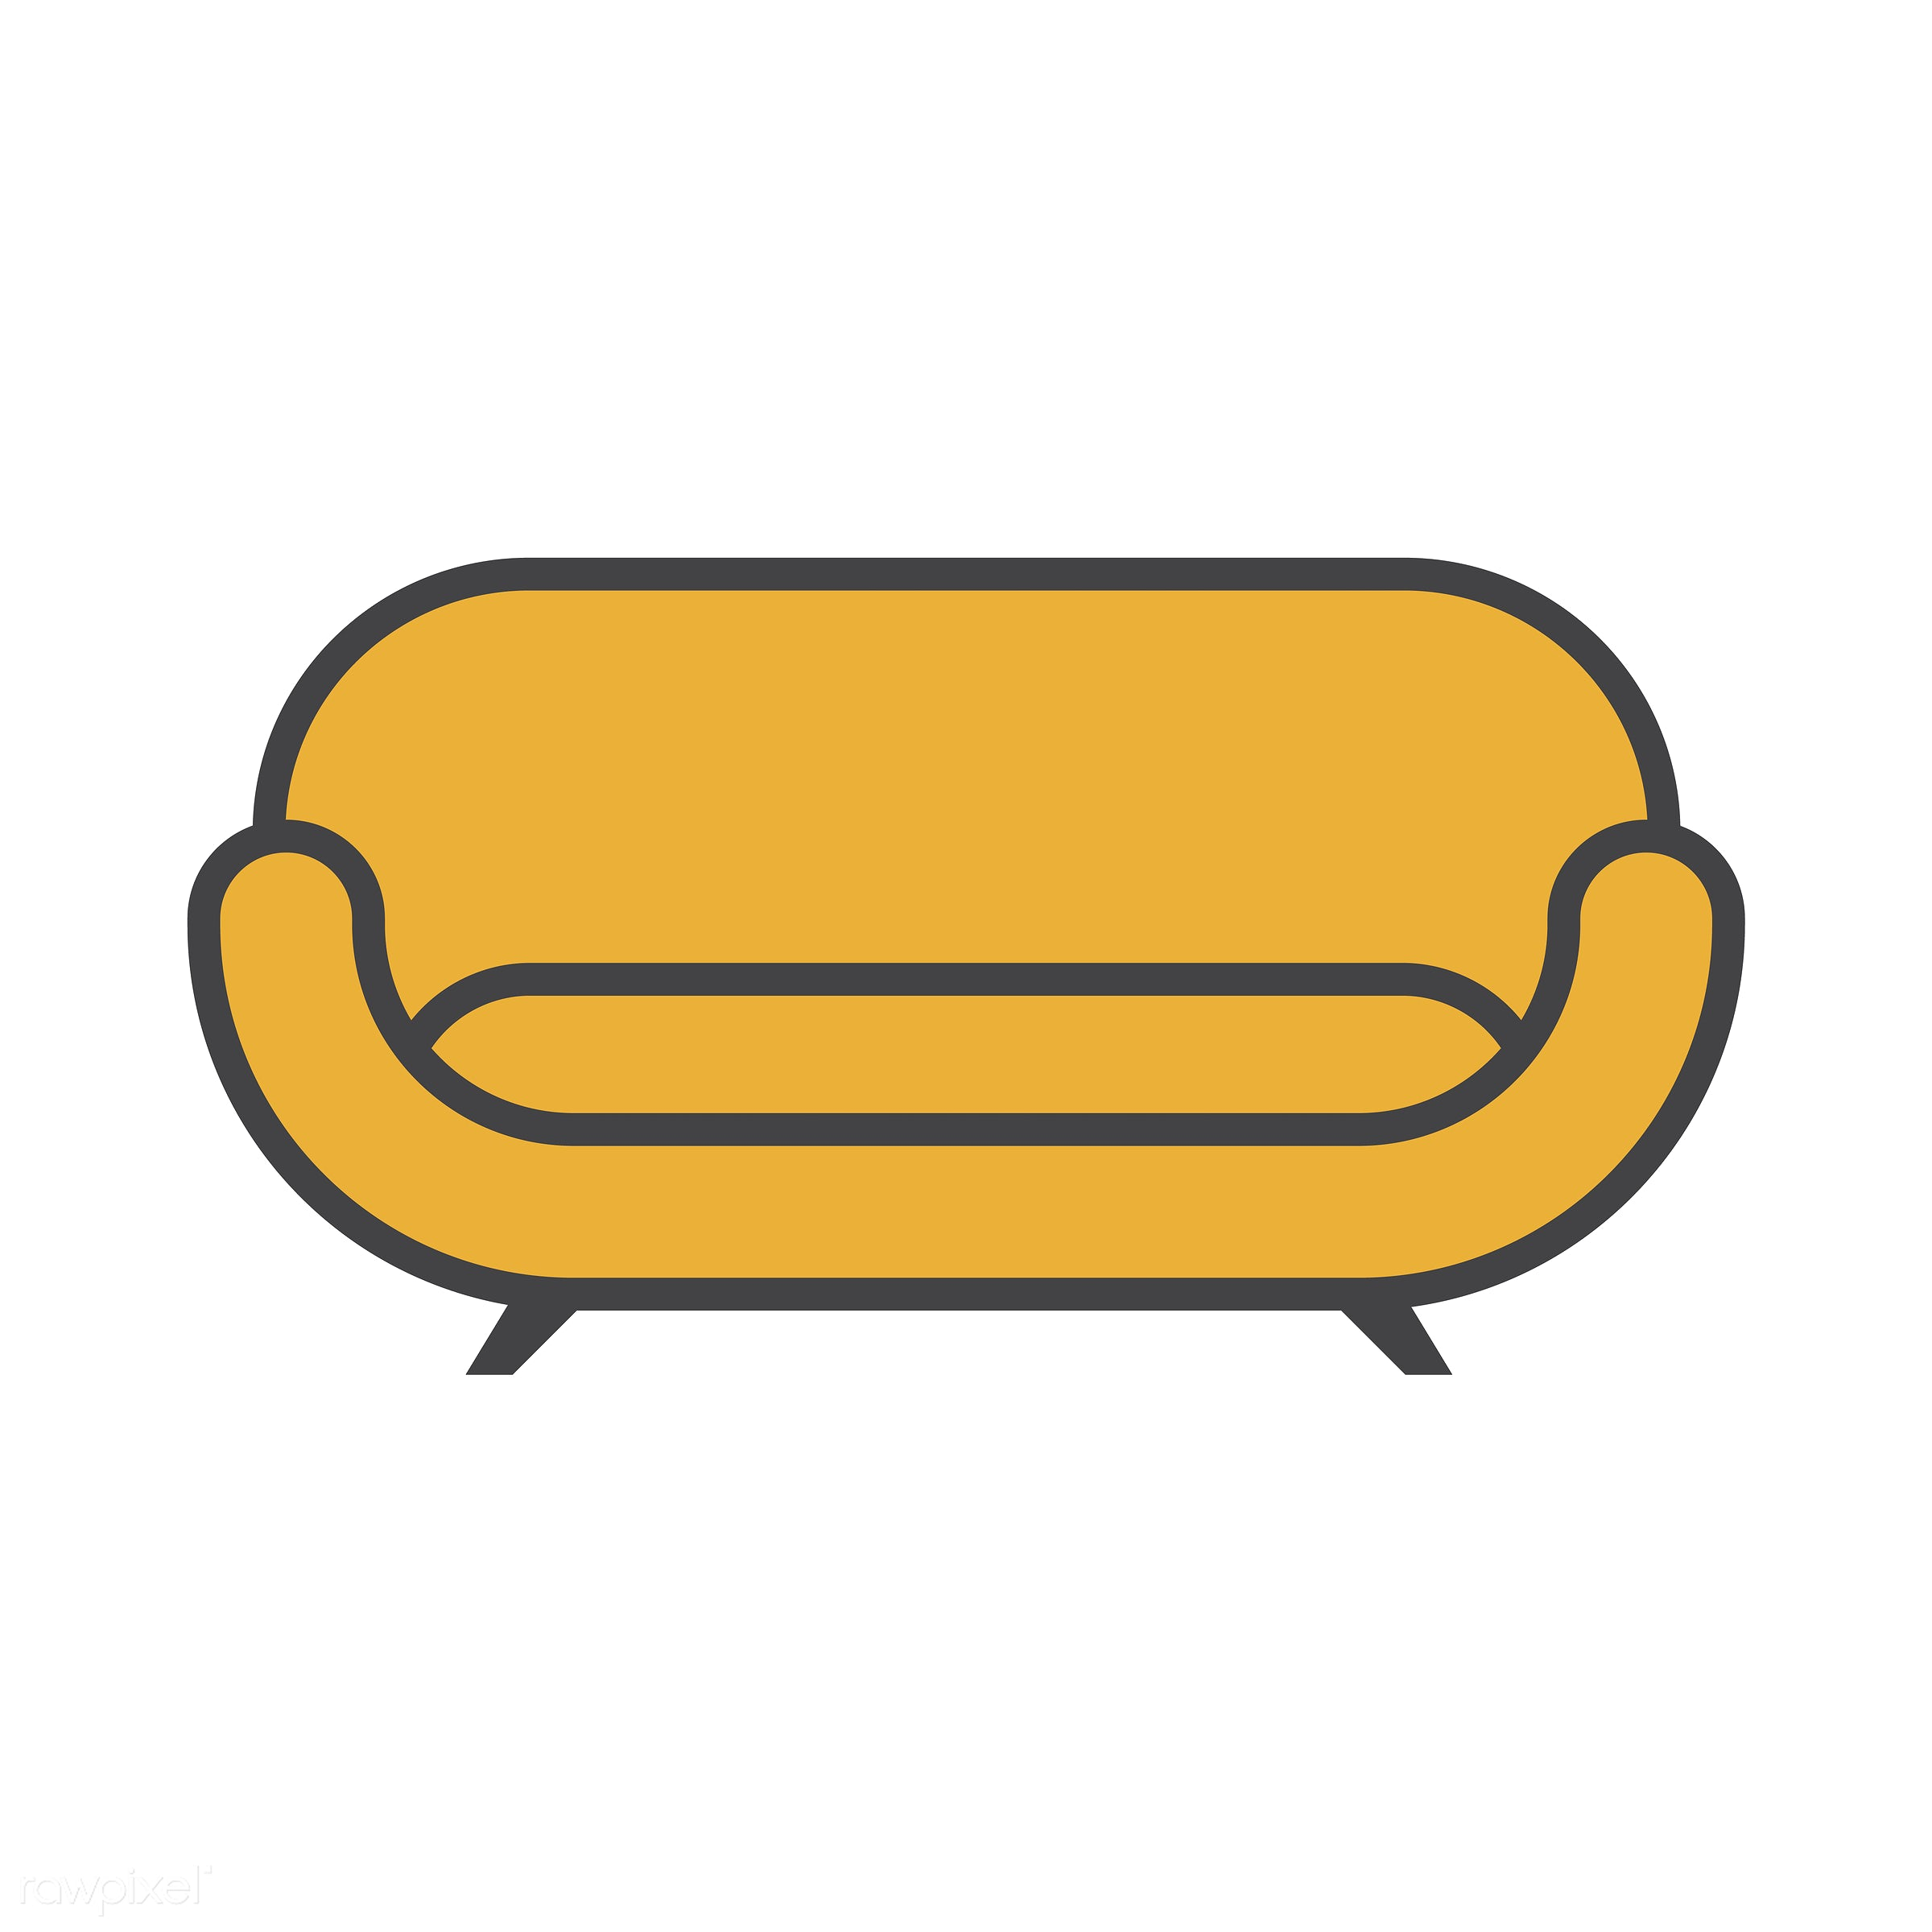 chill, couch, abode, adults, comfort, cozy, dwelling, home, homely, house, household, living, pad, residence, sofa, vector,...